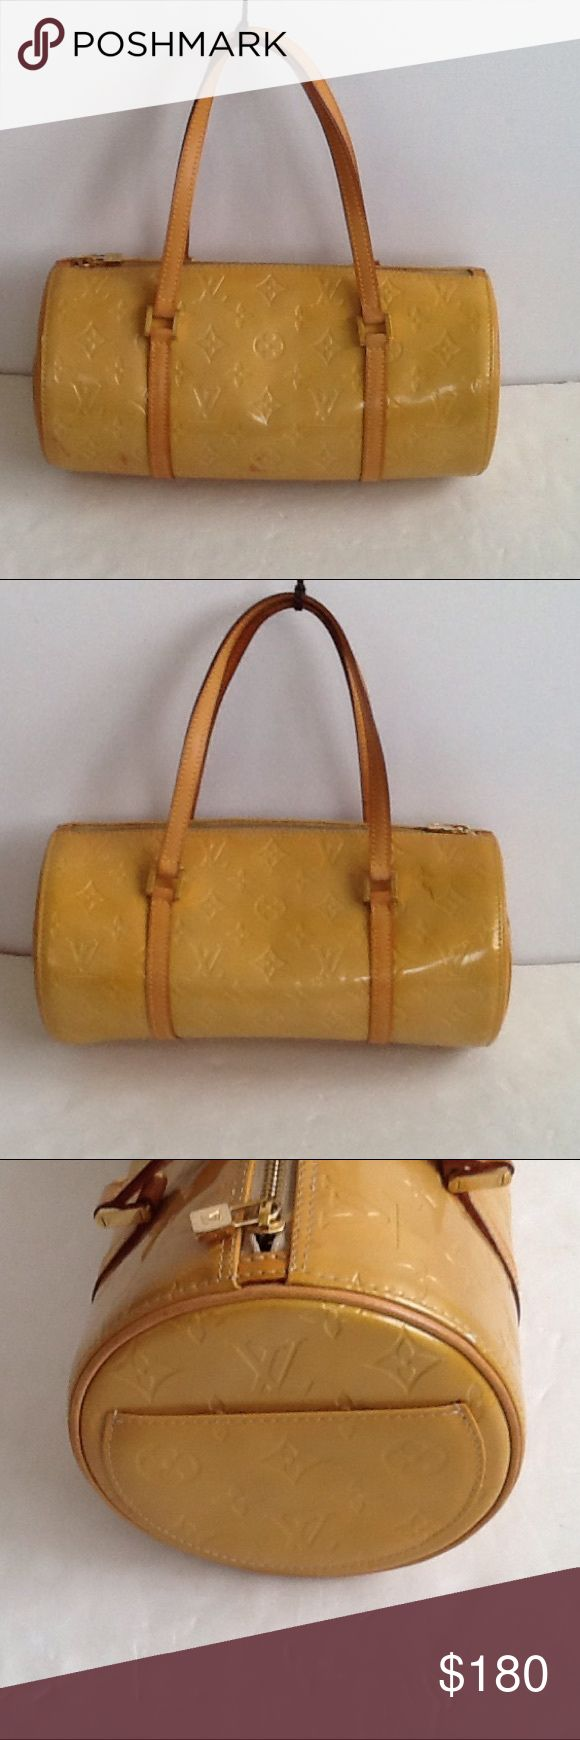 Authentic Louis Vuitton Bedford Gold Vernis Bag. The canvas had some stains. The inside linen had done peeling in the top. The bag was made in France with a date code VI 0959. The straps are good condition, the dimension us 12 and 5.5. The color is between good and yellow. Louis Vuitton Bags Satchels